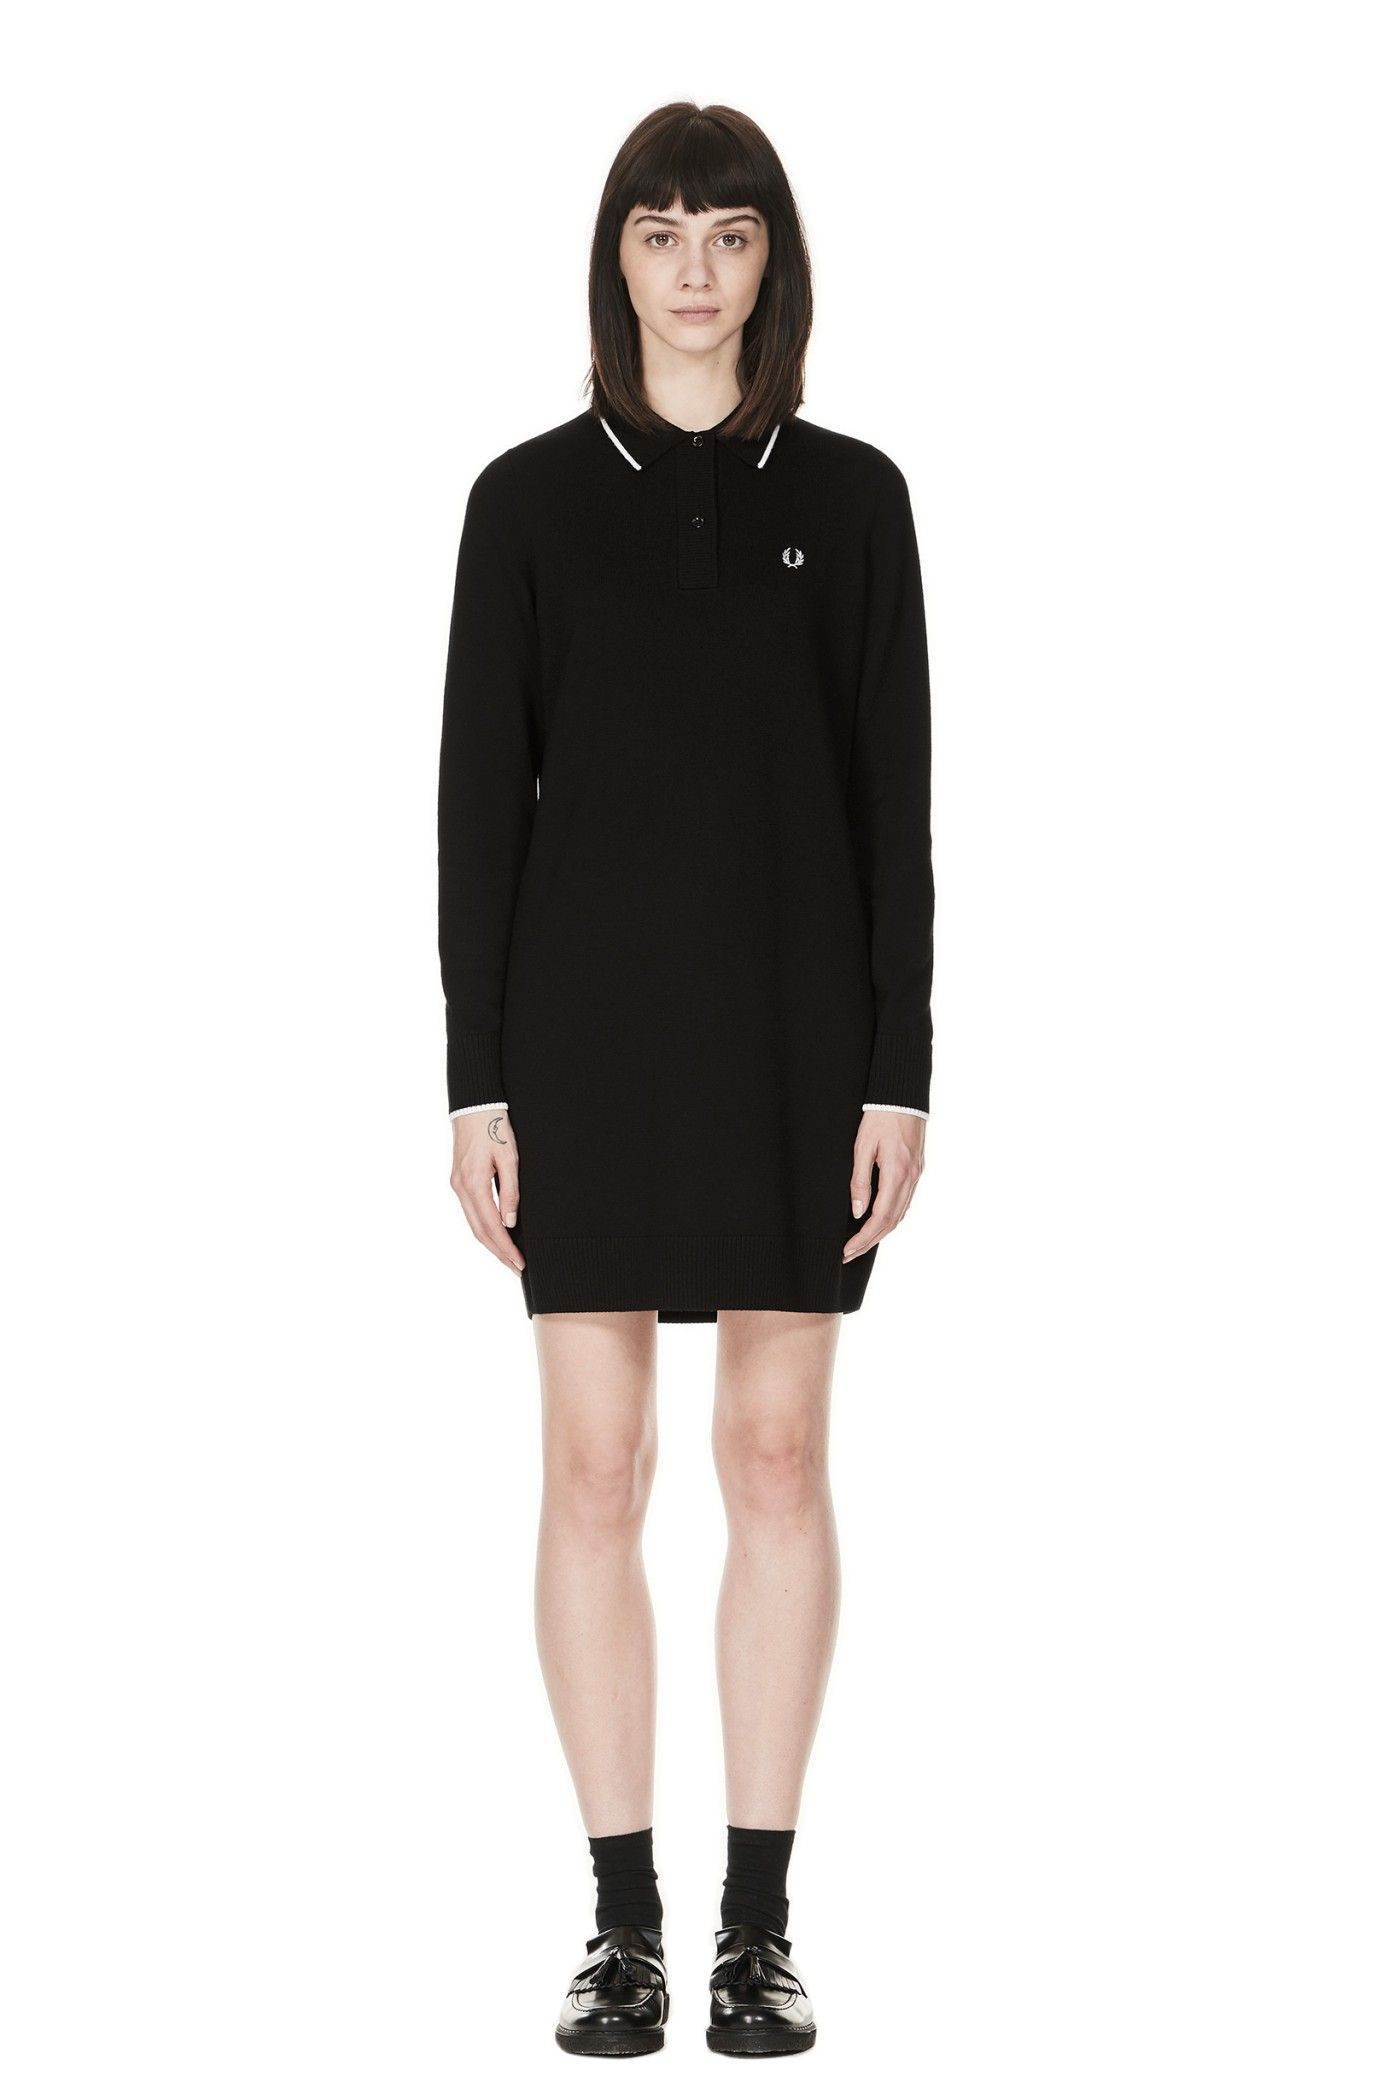 Knitted Fred Perry Dress Black   tout c que je veux   Pinterest   Je ... bdf738b79203